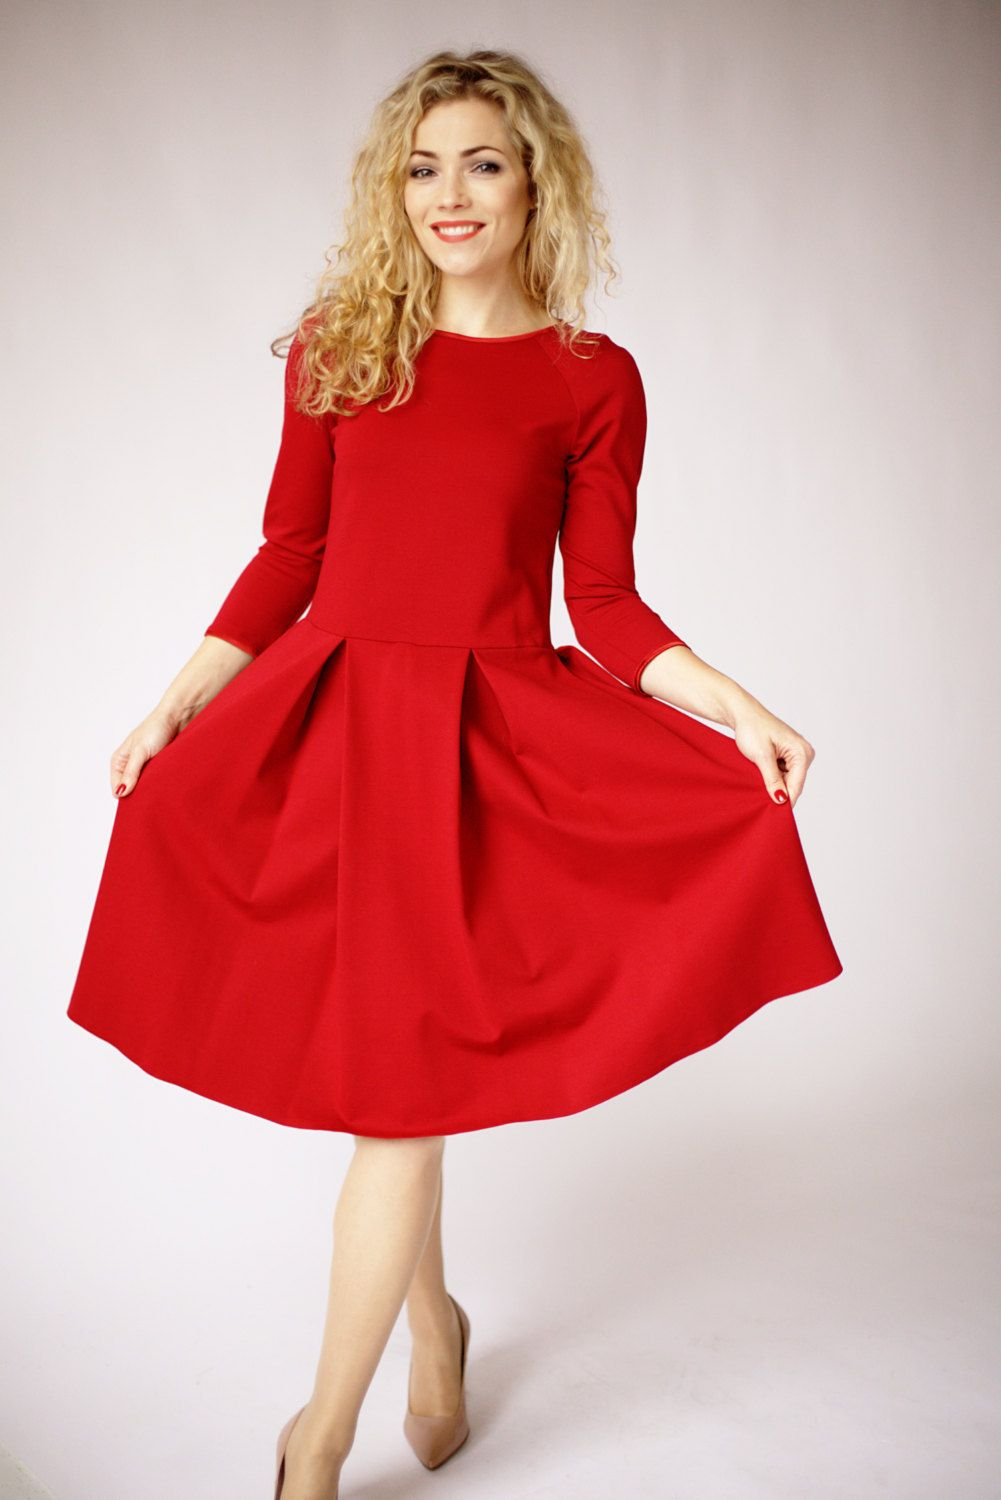 Red formal winter dresses advise to wear for everyday in 2019